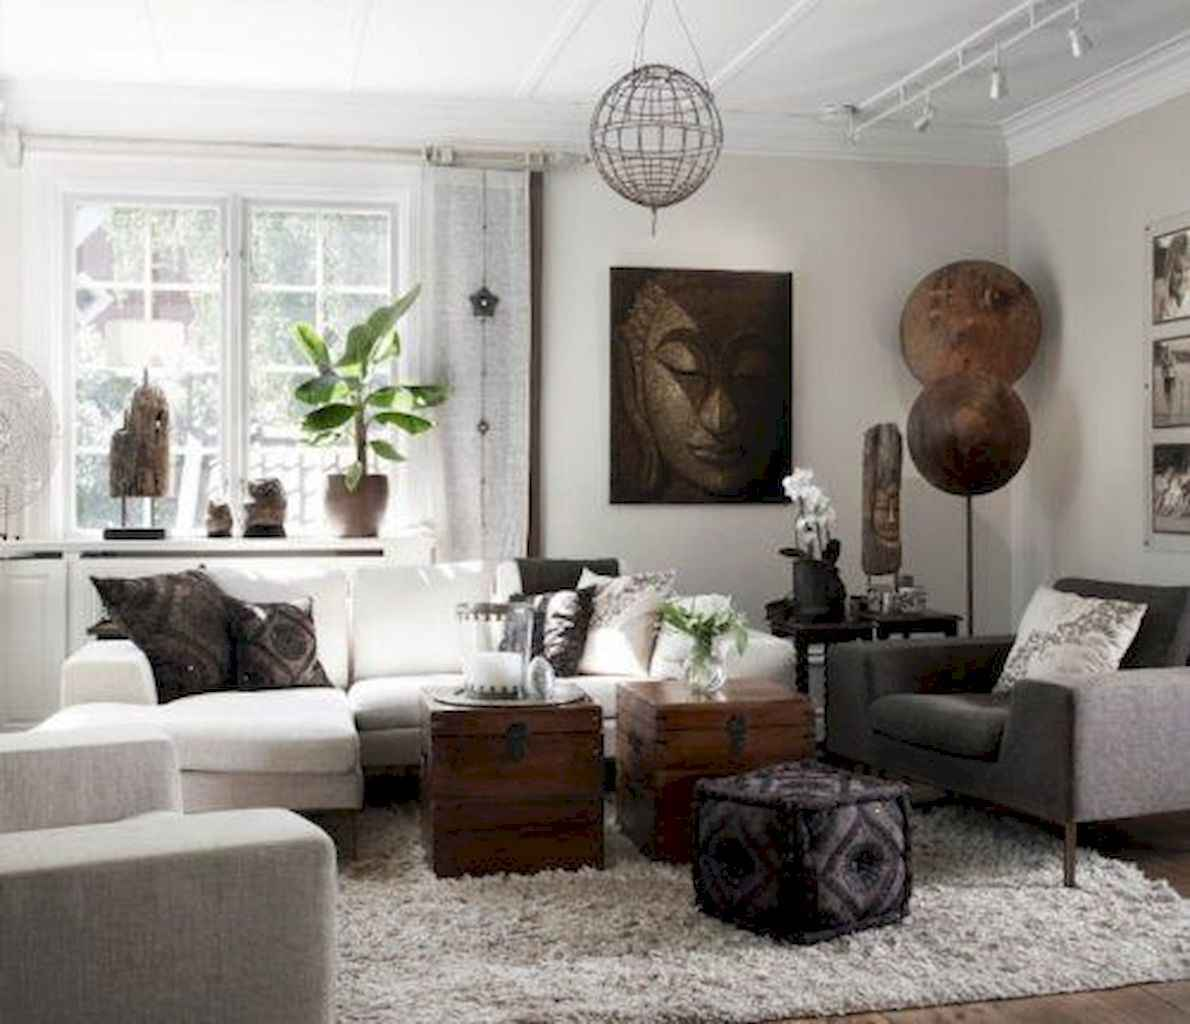 Awesome 35 Asian Living Room Decor Ideas 16 Coachdecor Com Best Image Libraries Thycampuscom